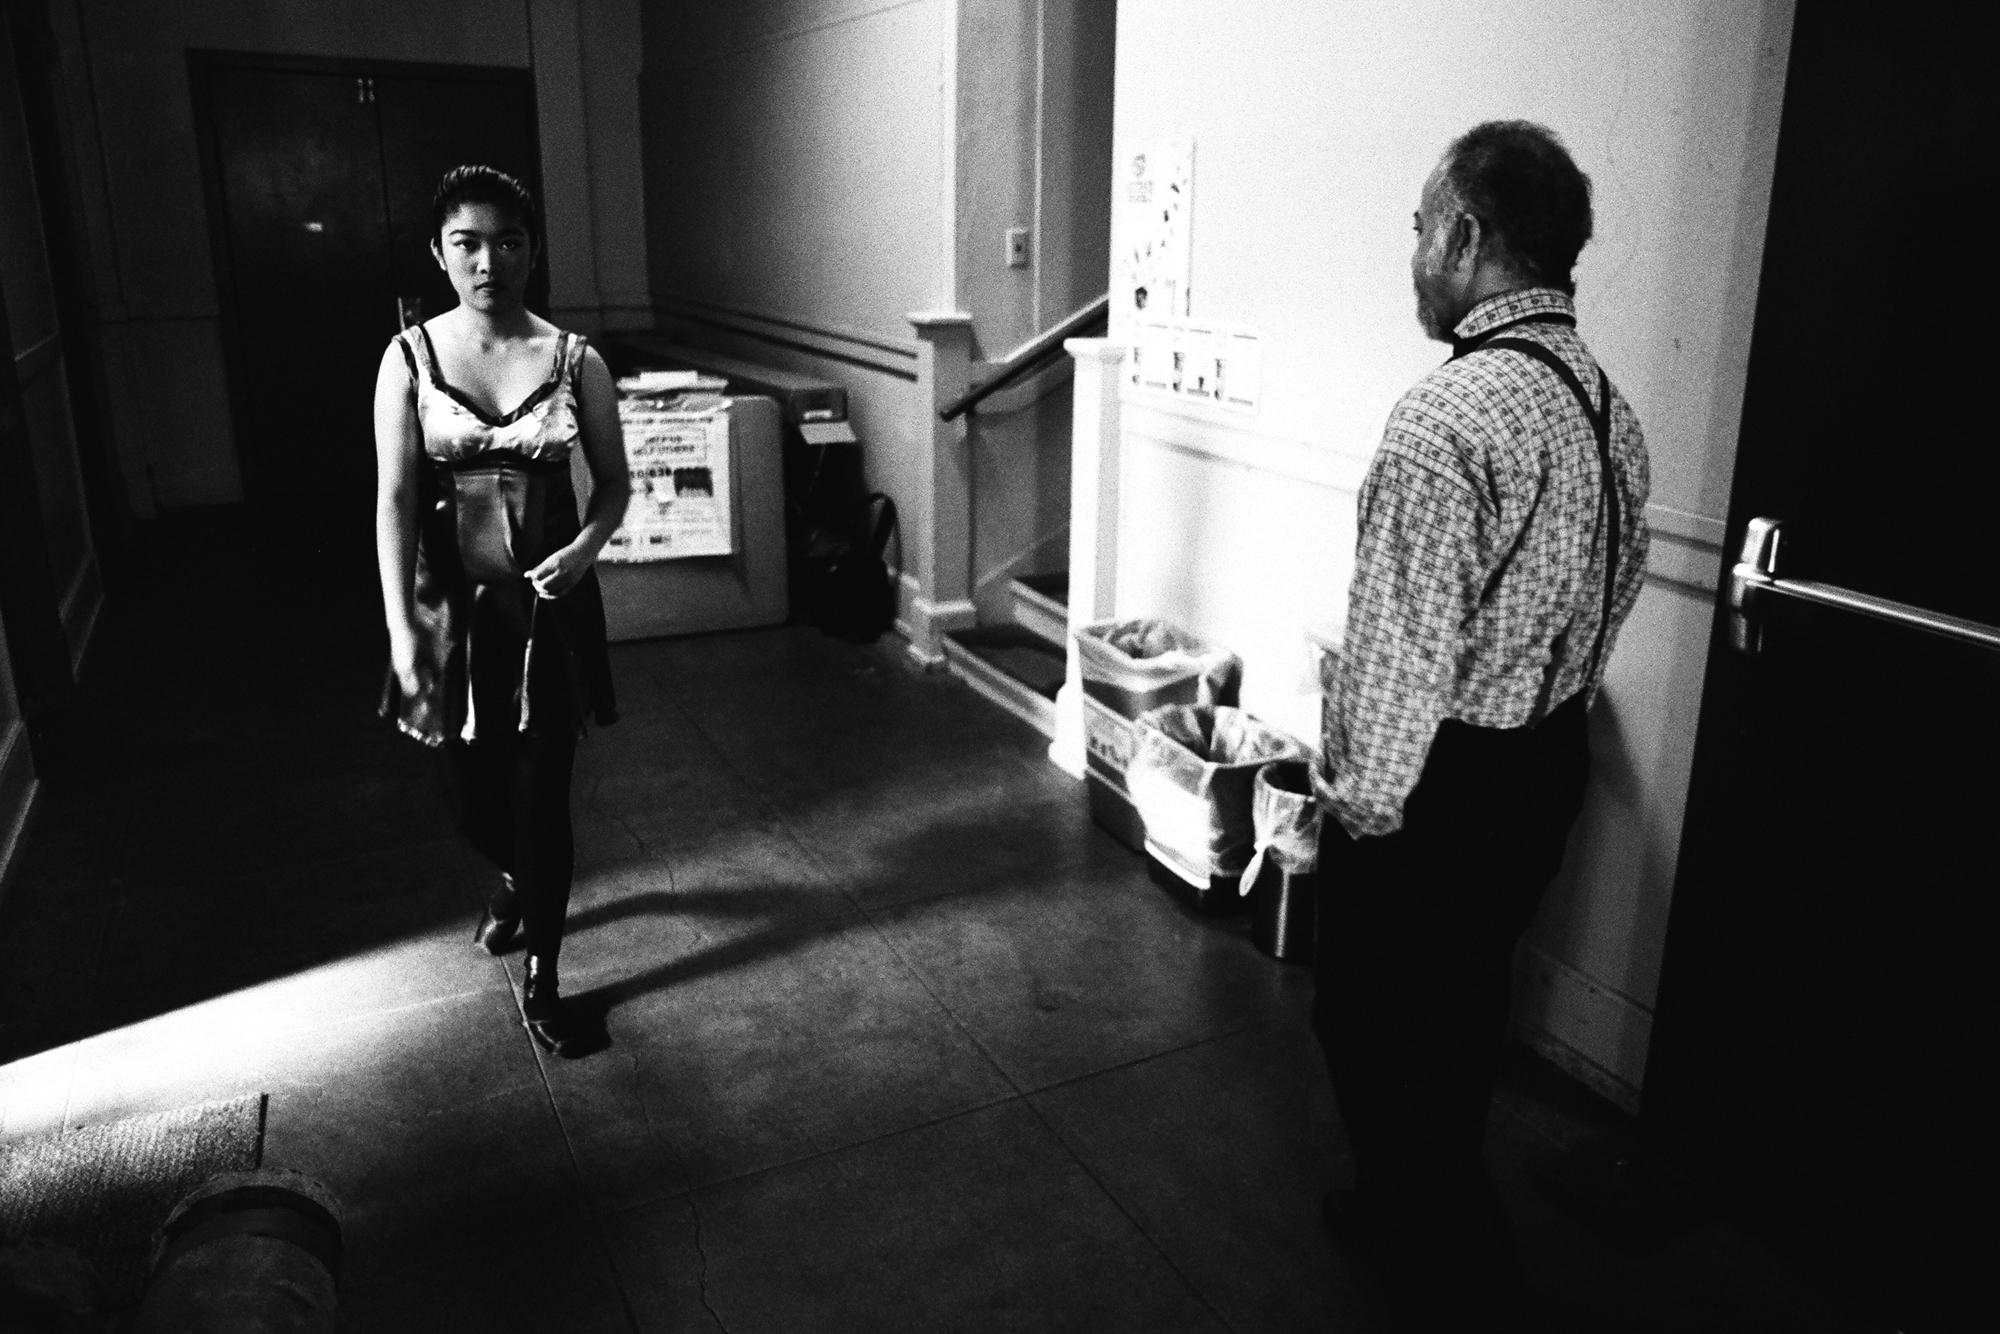 A young dancer from the Alameda Civic Ballet passes an older dancer from the Barbary Coast Cloggers, backstage at Kofman Theatre.